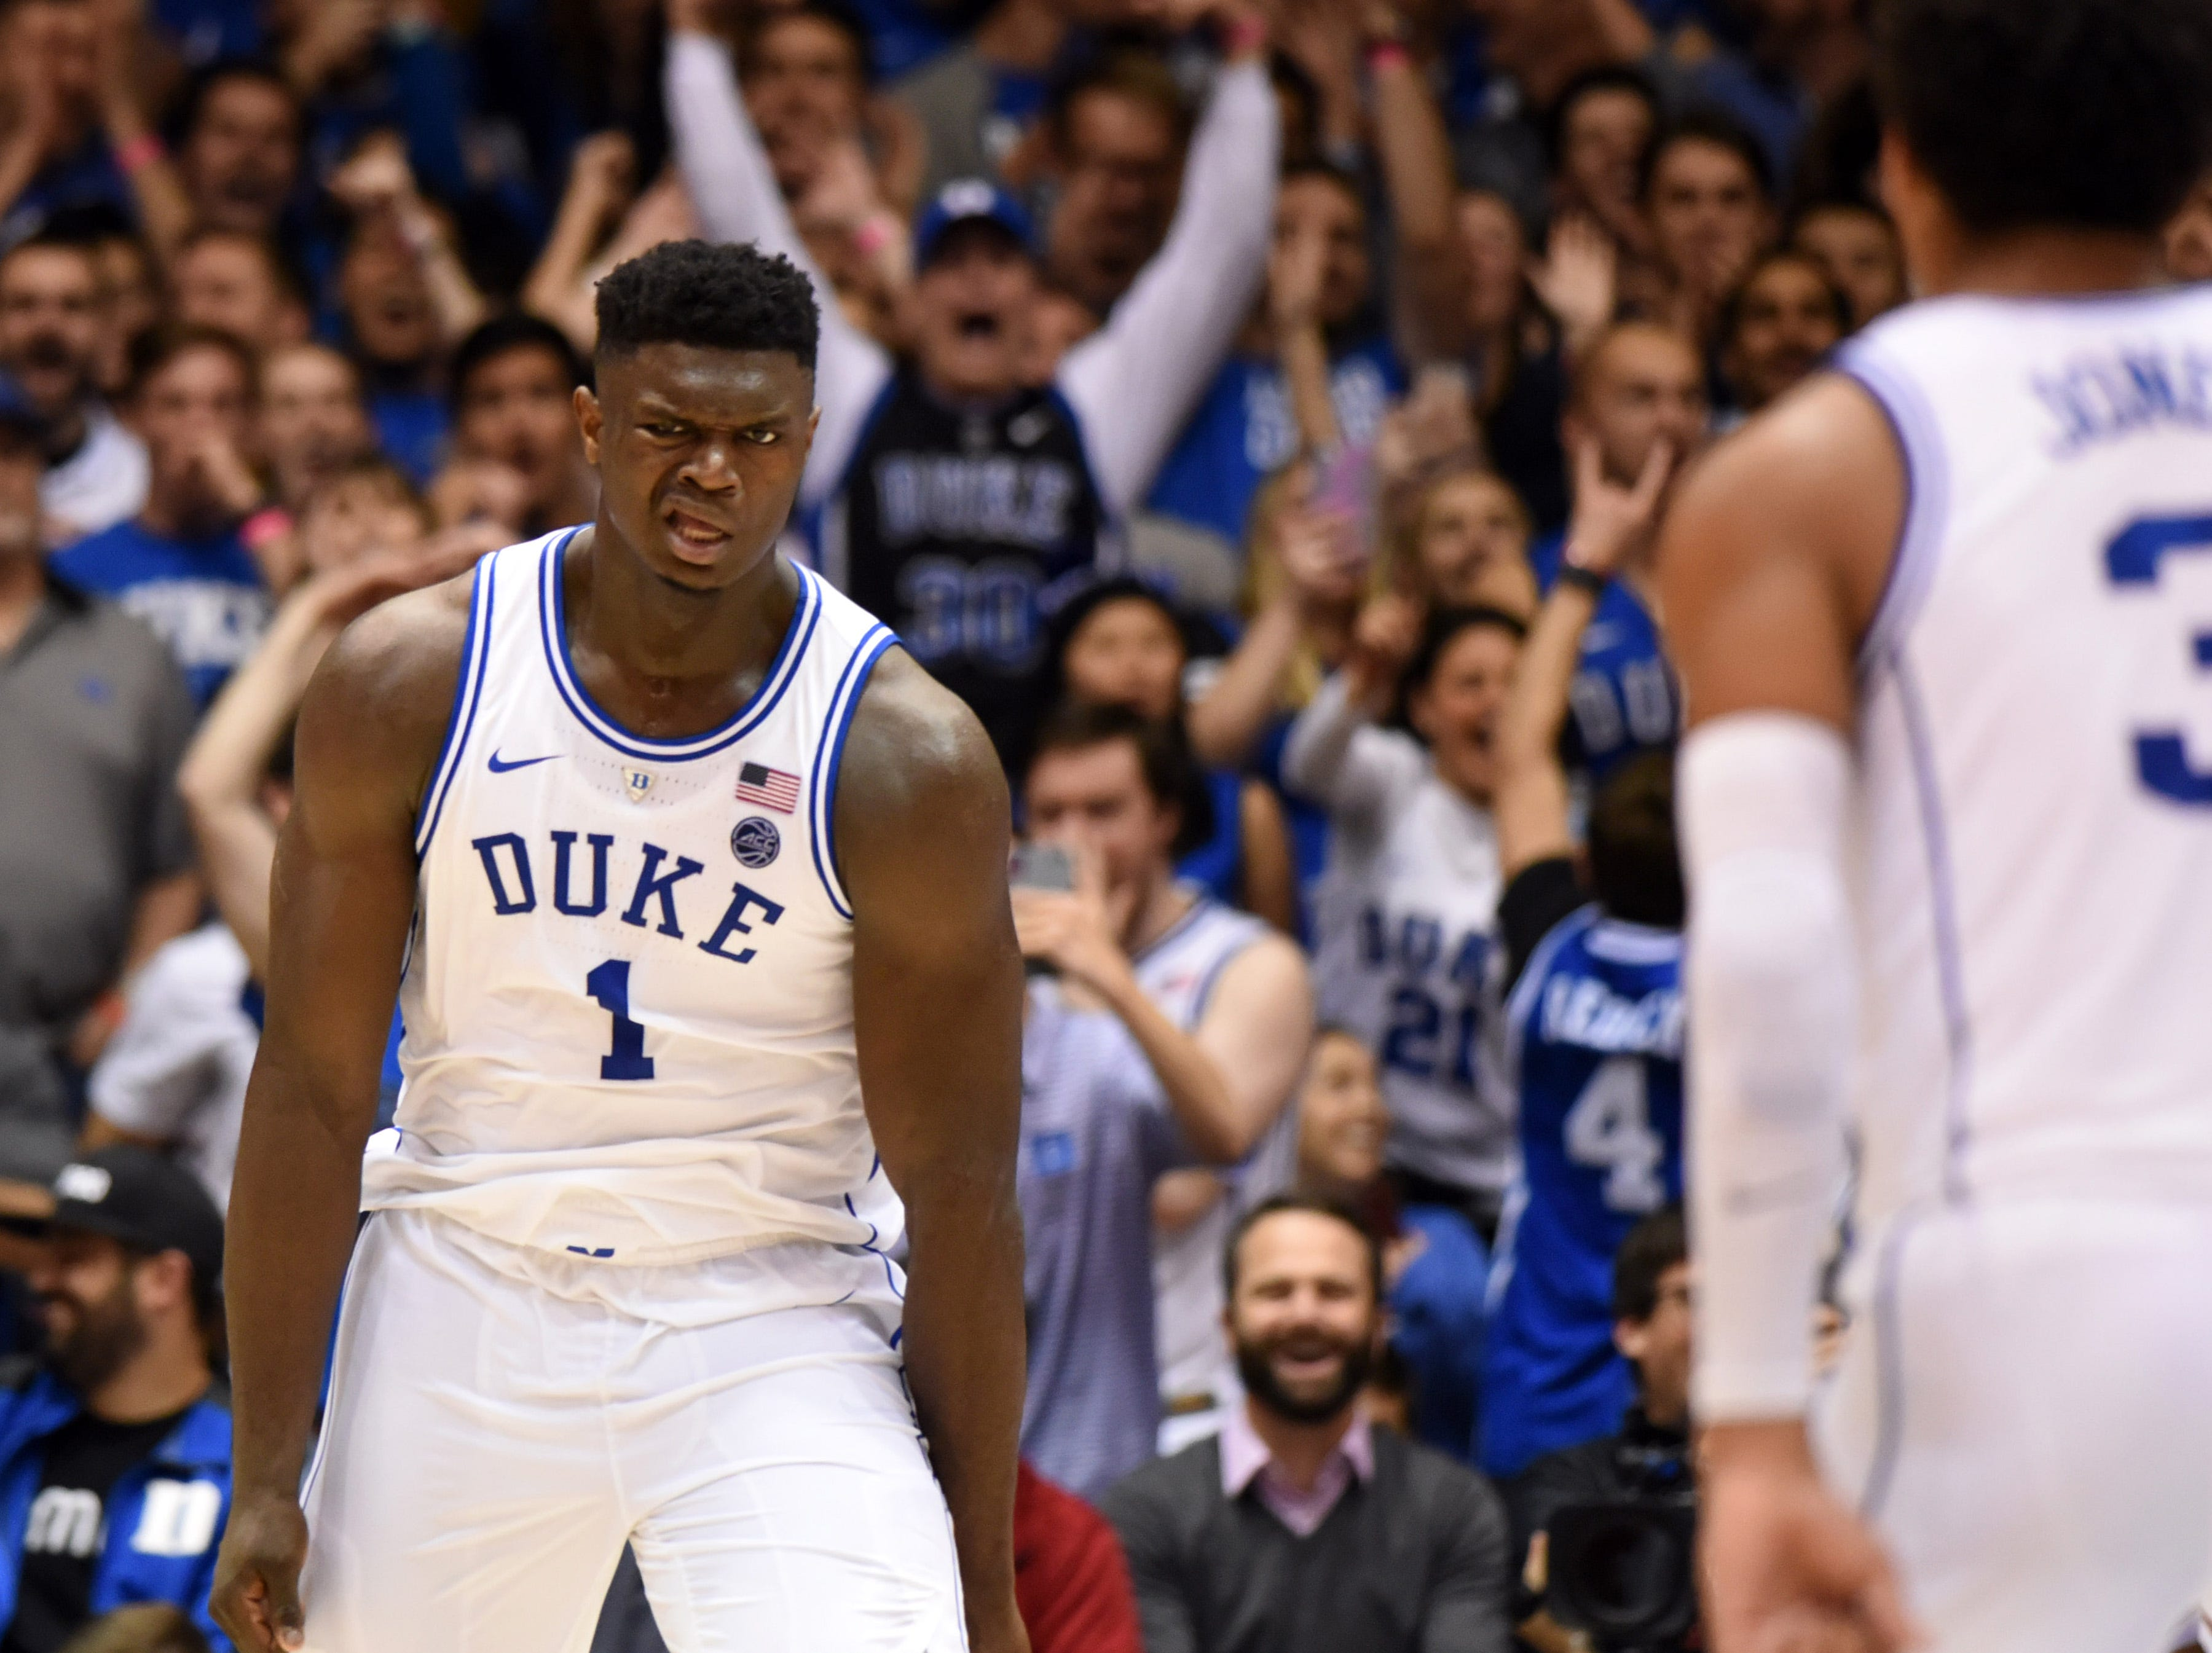 Nov. 27: Duke Blue Devils forward Zion Williamson reacts after a dunk during the second half against the Indiana Hoosiers at Cameron Indoor Stadium.